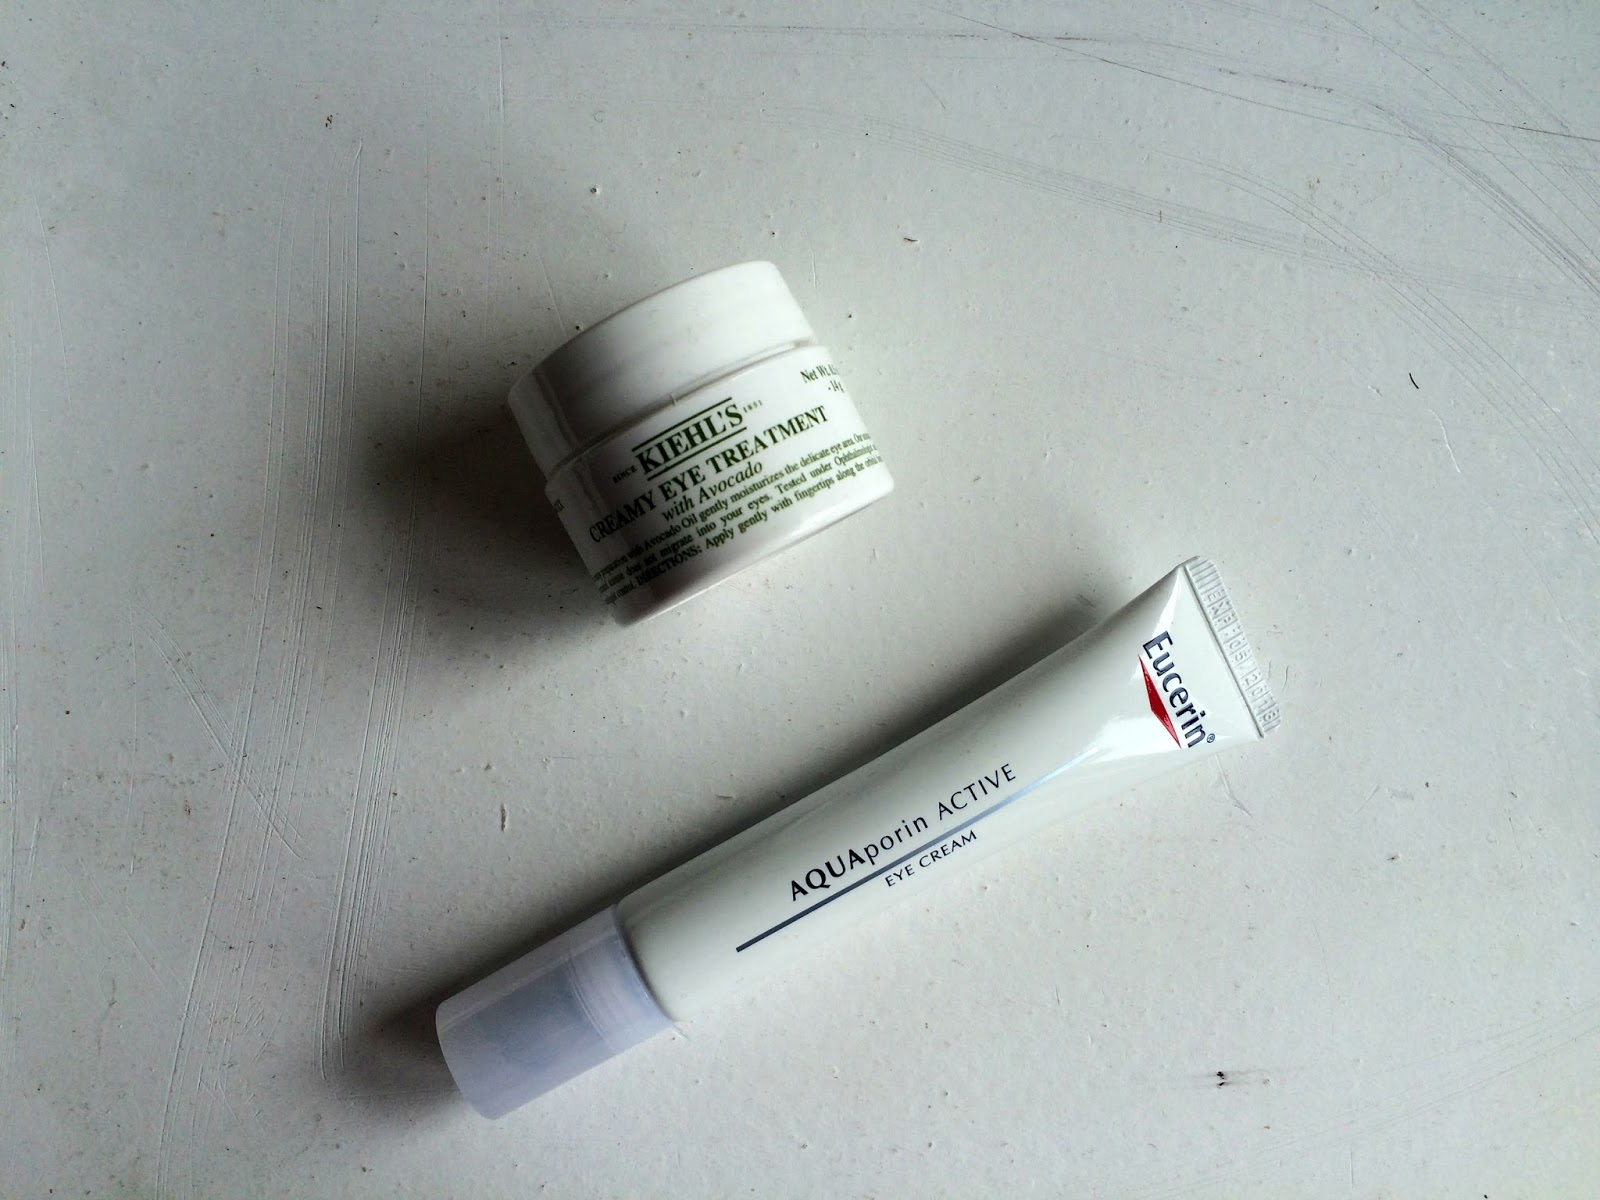 Eye creams kiehl's avocado treatment and eucerin aquaporin active revitalising eye care